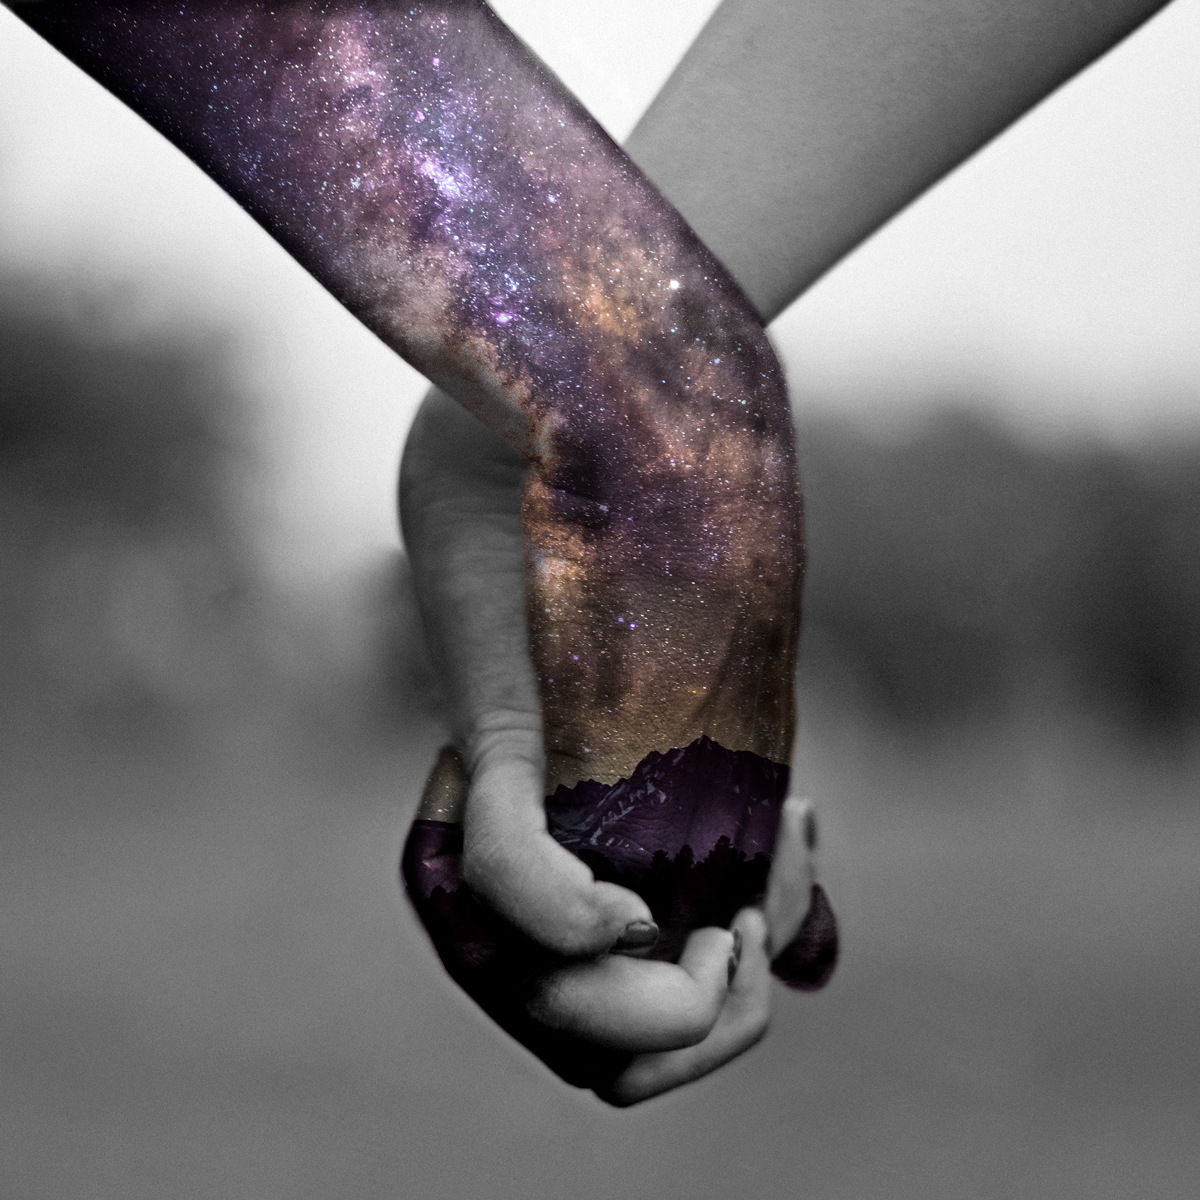 Holding hands, night sky, stars, and milky way overlaid against one hand